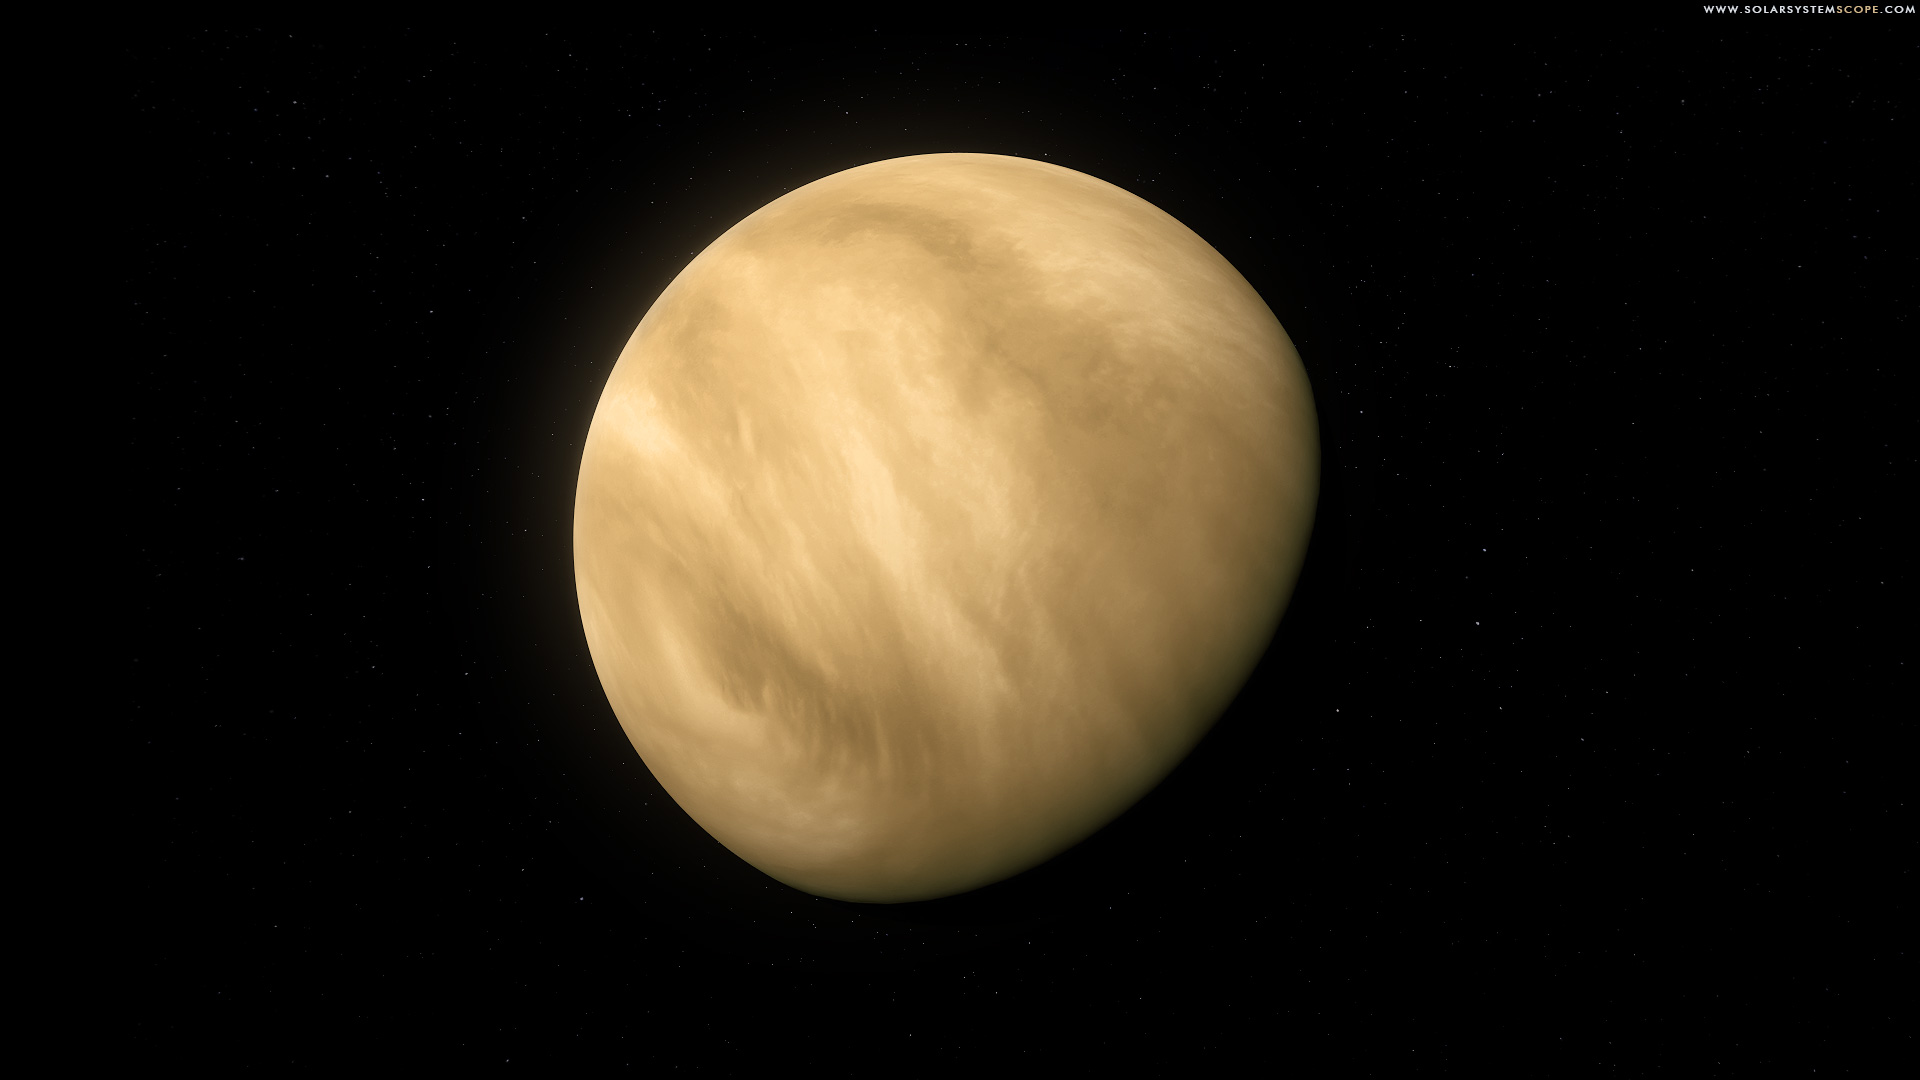 venus planet in hindi - HD 1920×1080